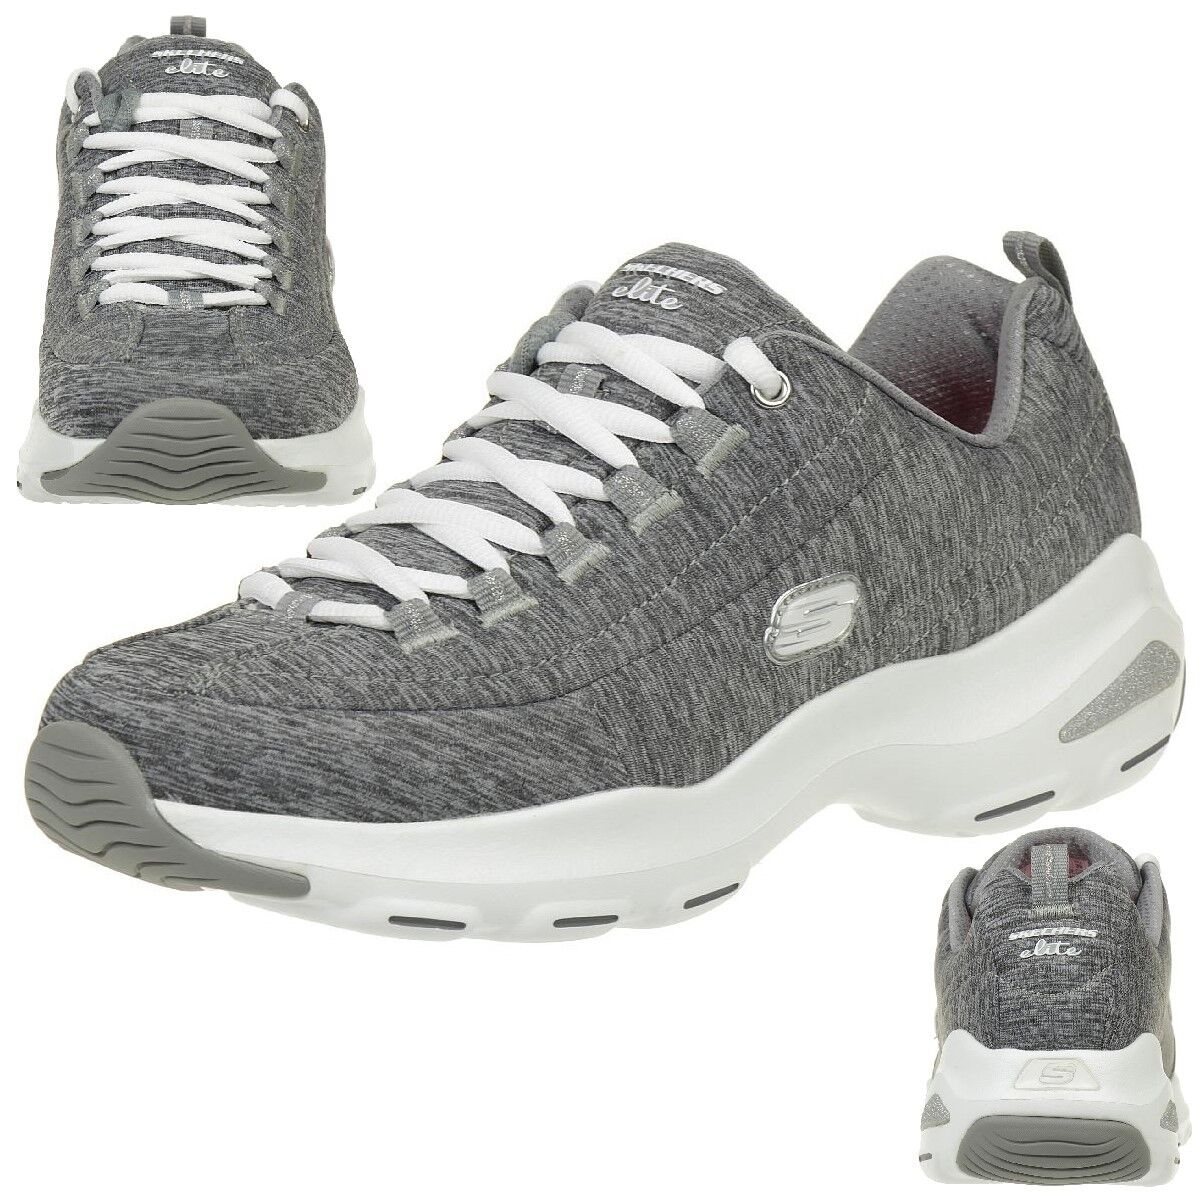 Skechers D'Lite Ultra-Meditative Ladies shoes Air Cooled Memory Foam Gry